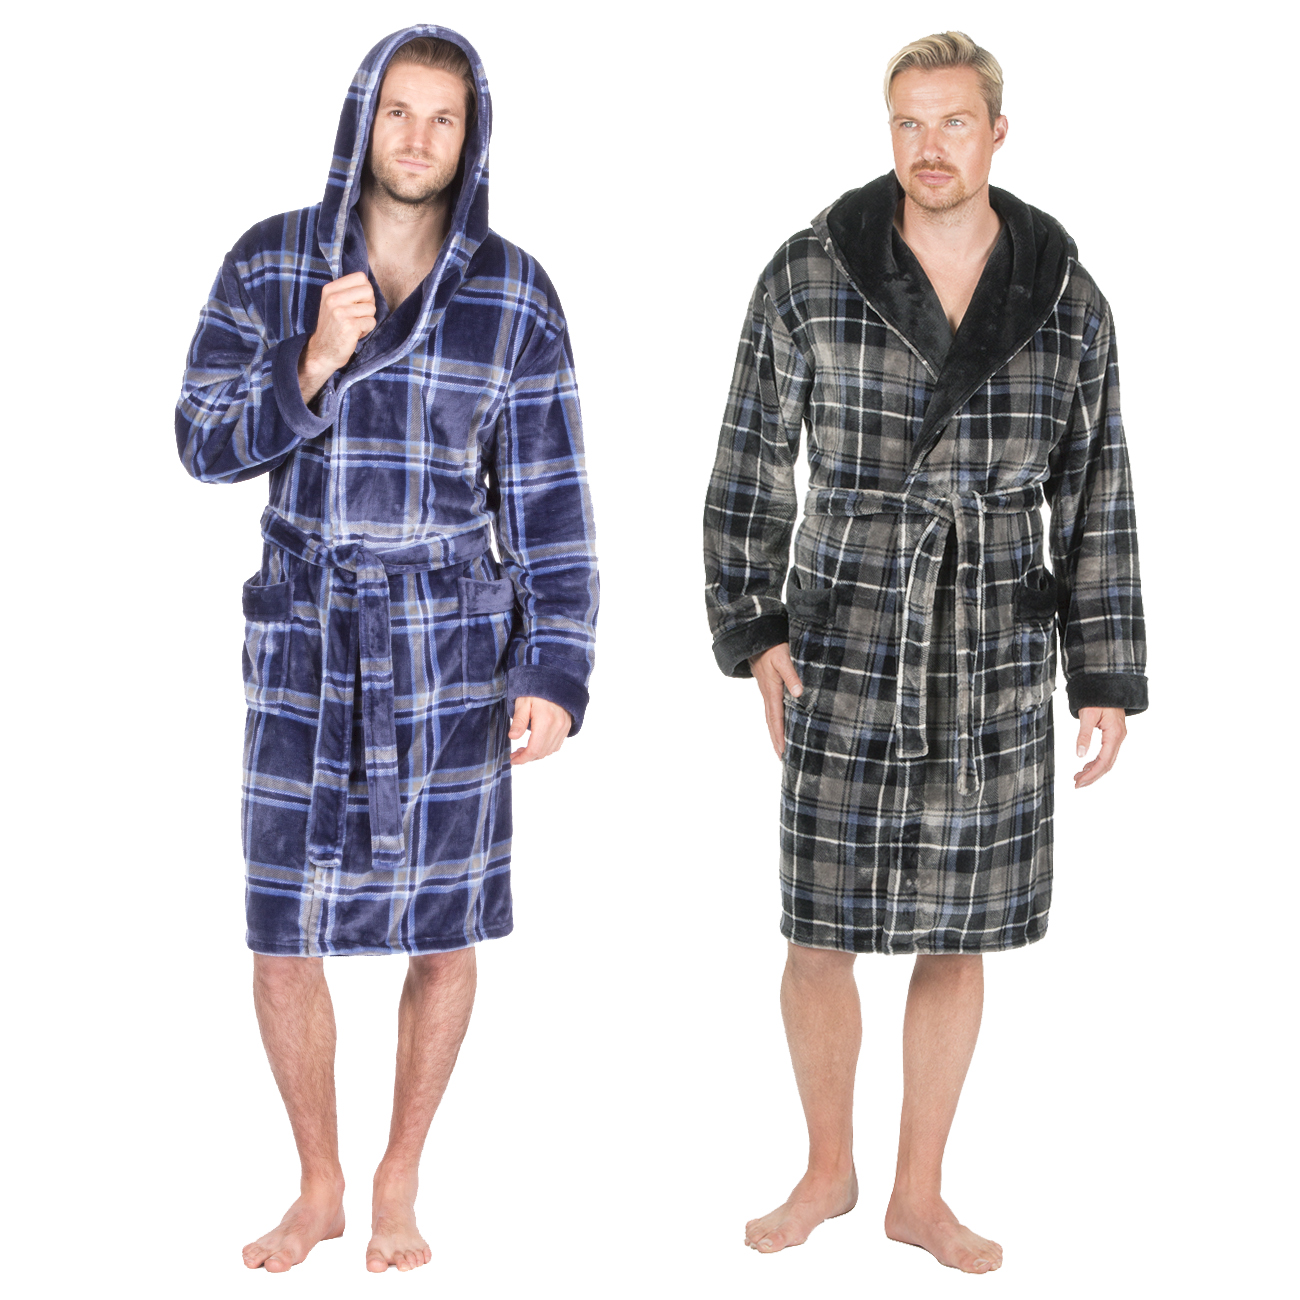 0afecff19a Pierre Roche Mens Luxury Flannel Fleece Dressing Gown Hooded Checked Robe